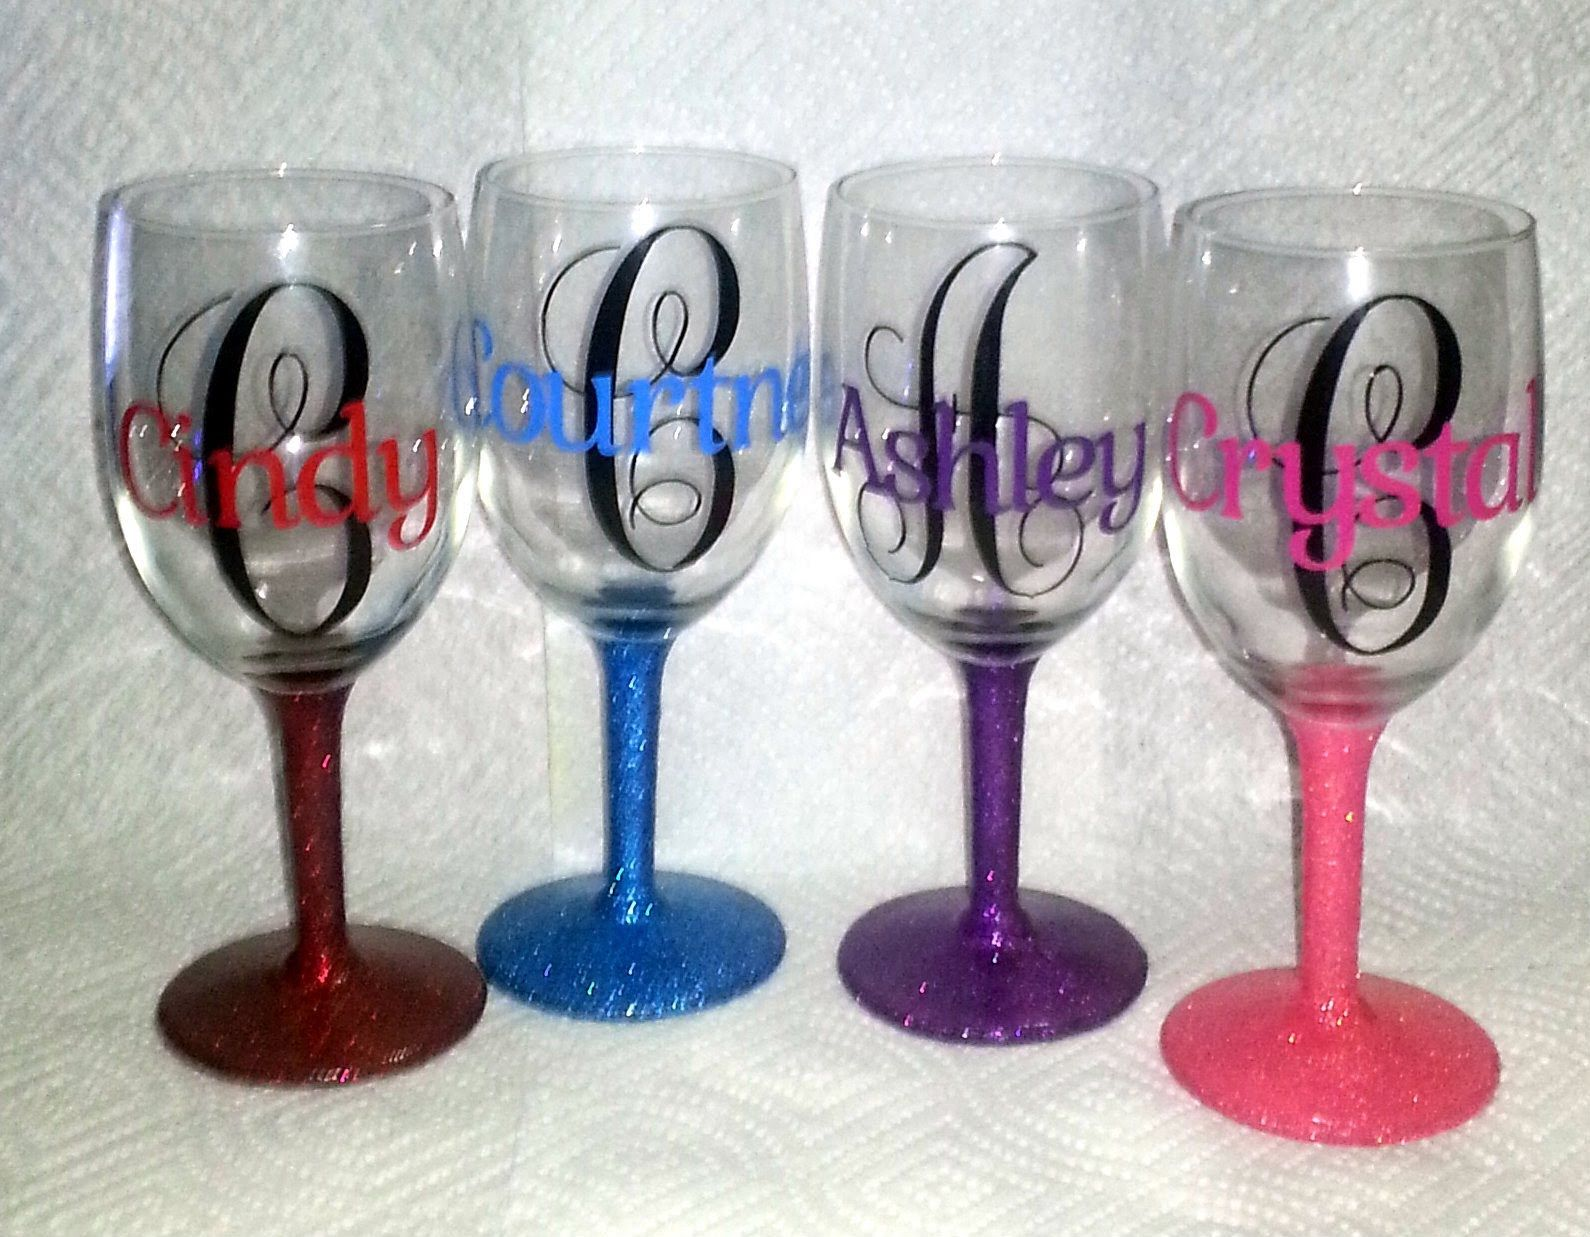 d82dd52aefd7 personalized wine glasses (I may try and make these for Christmas gifts!)  CAROLA